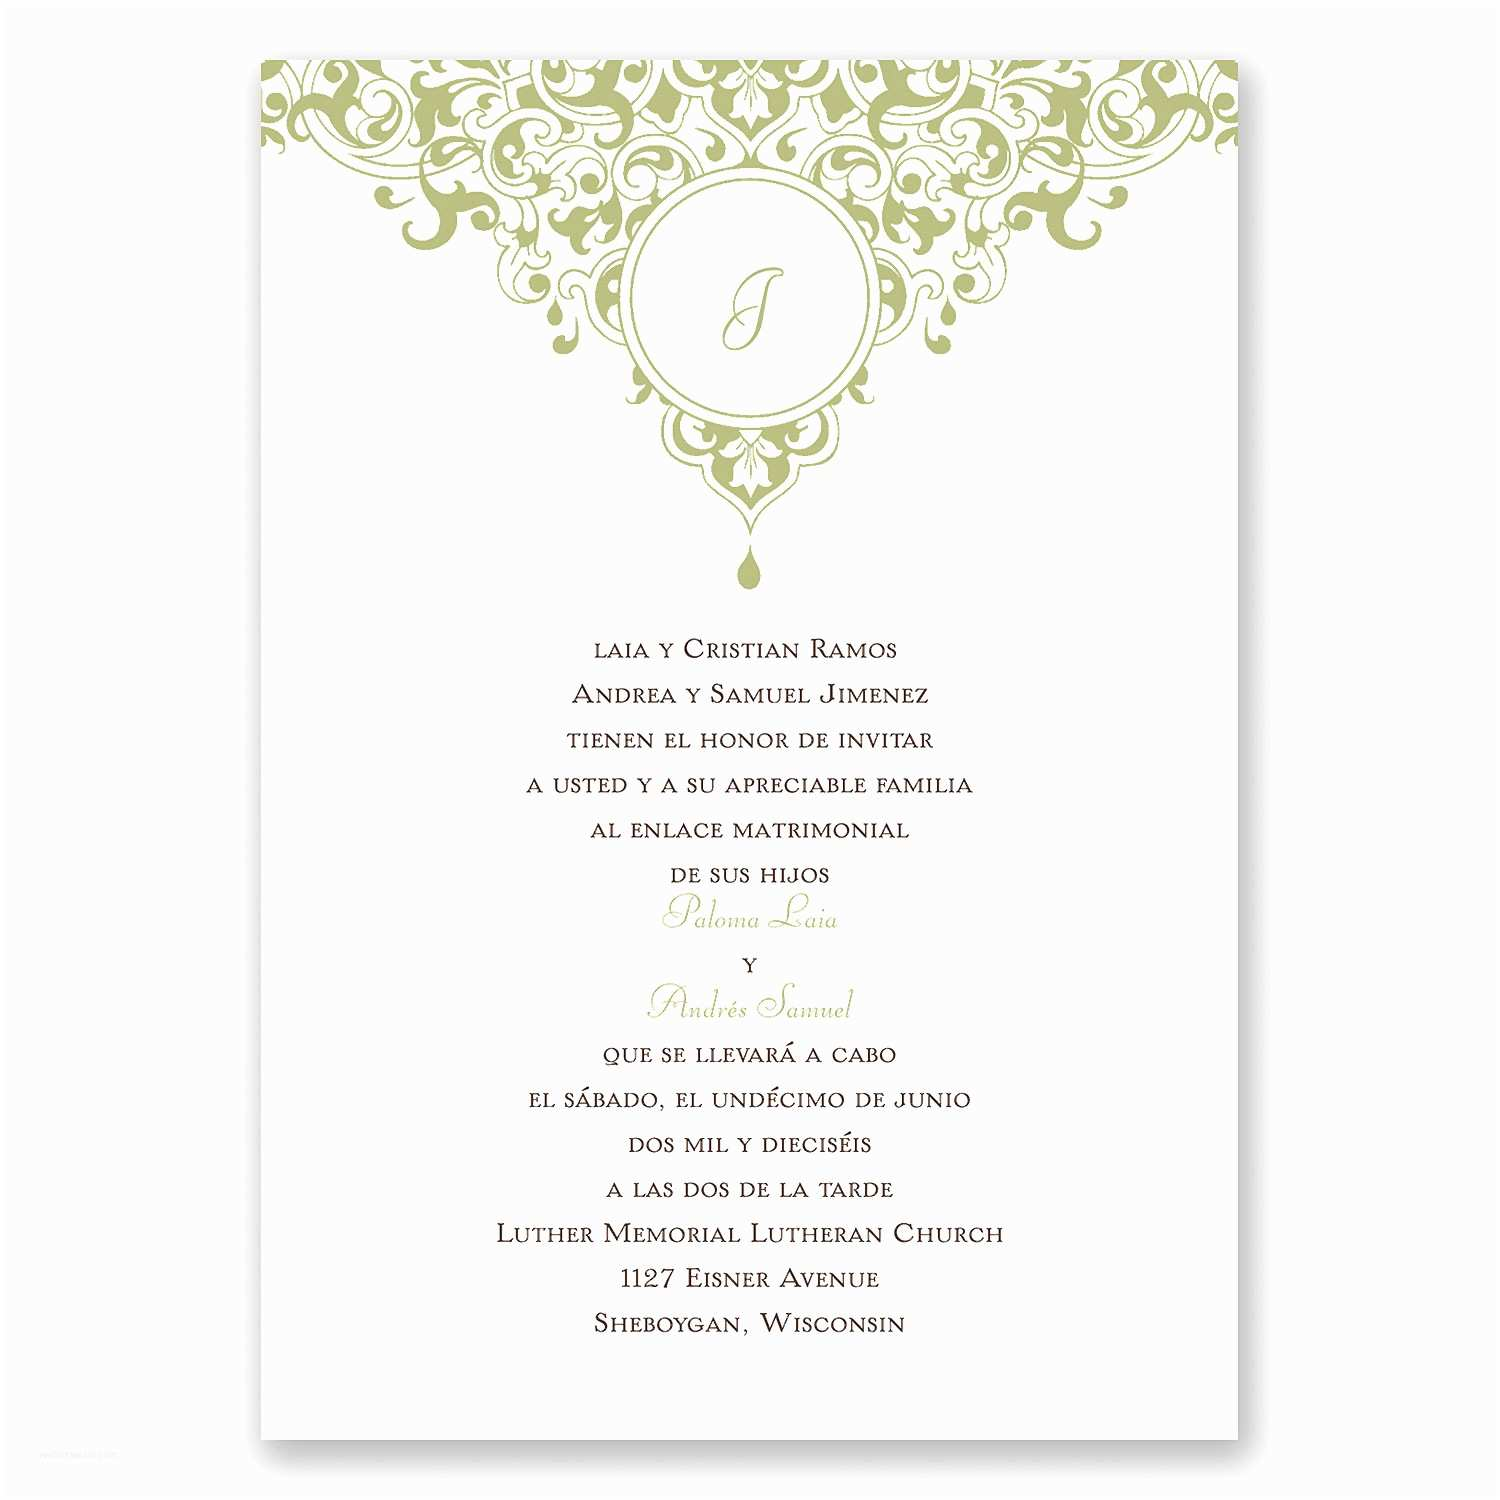 Bride and Groom Wedding Invitations Tips for the Perfect Wedding Invitations Latino Bride